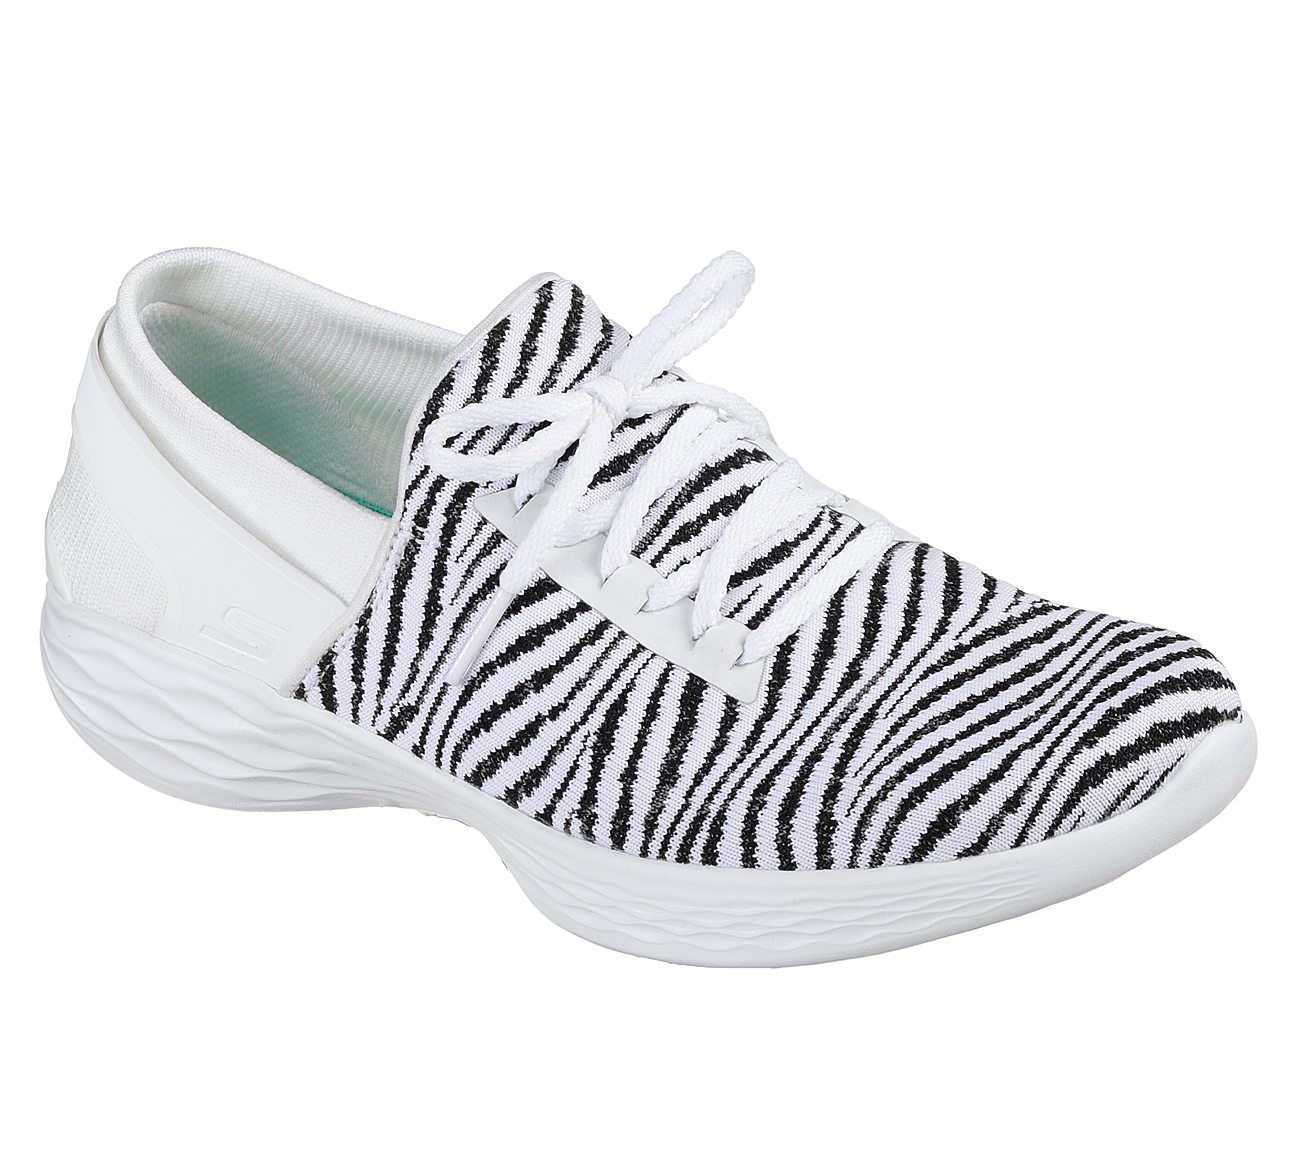 Skechers You Unity White - Womens  - Size